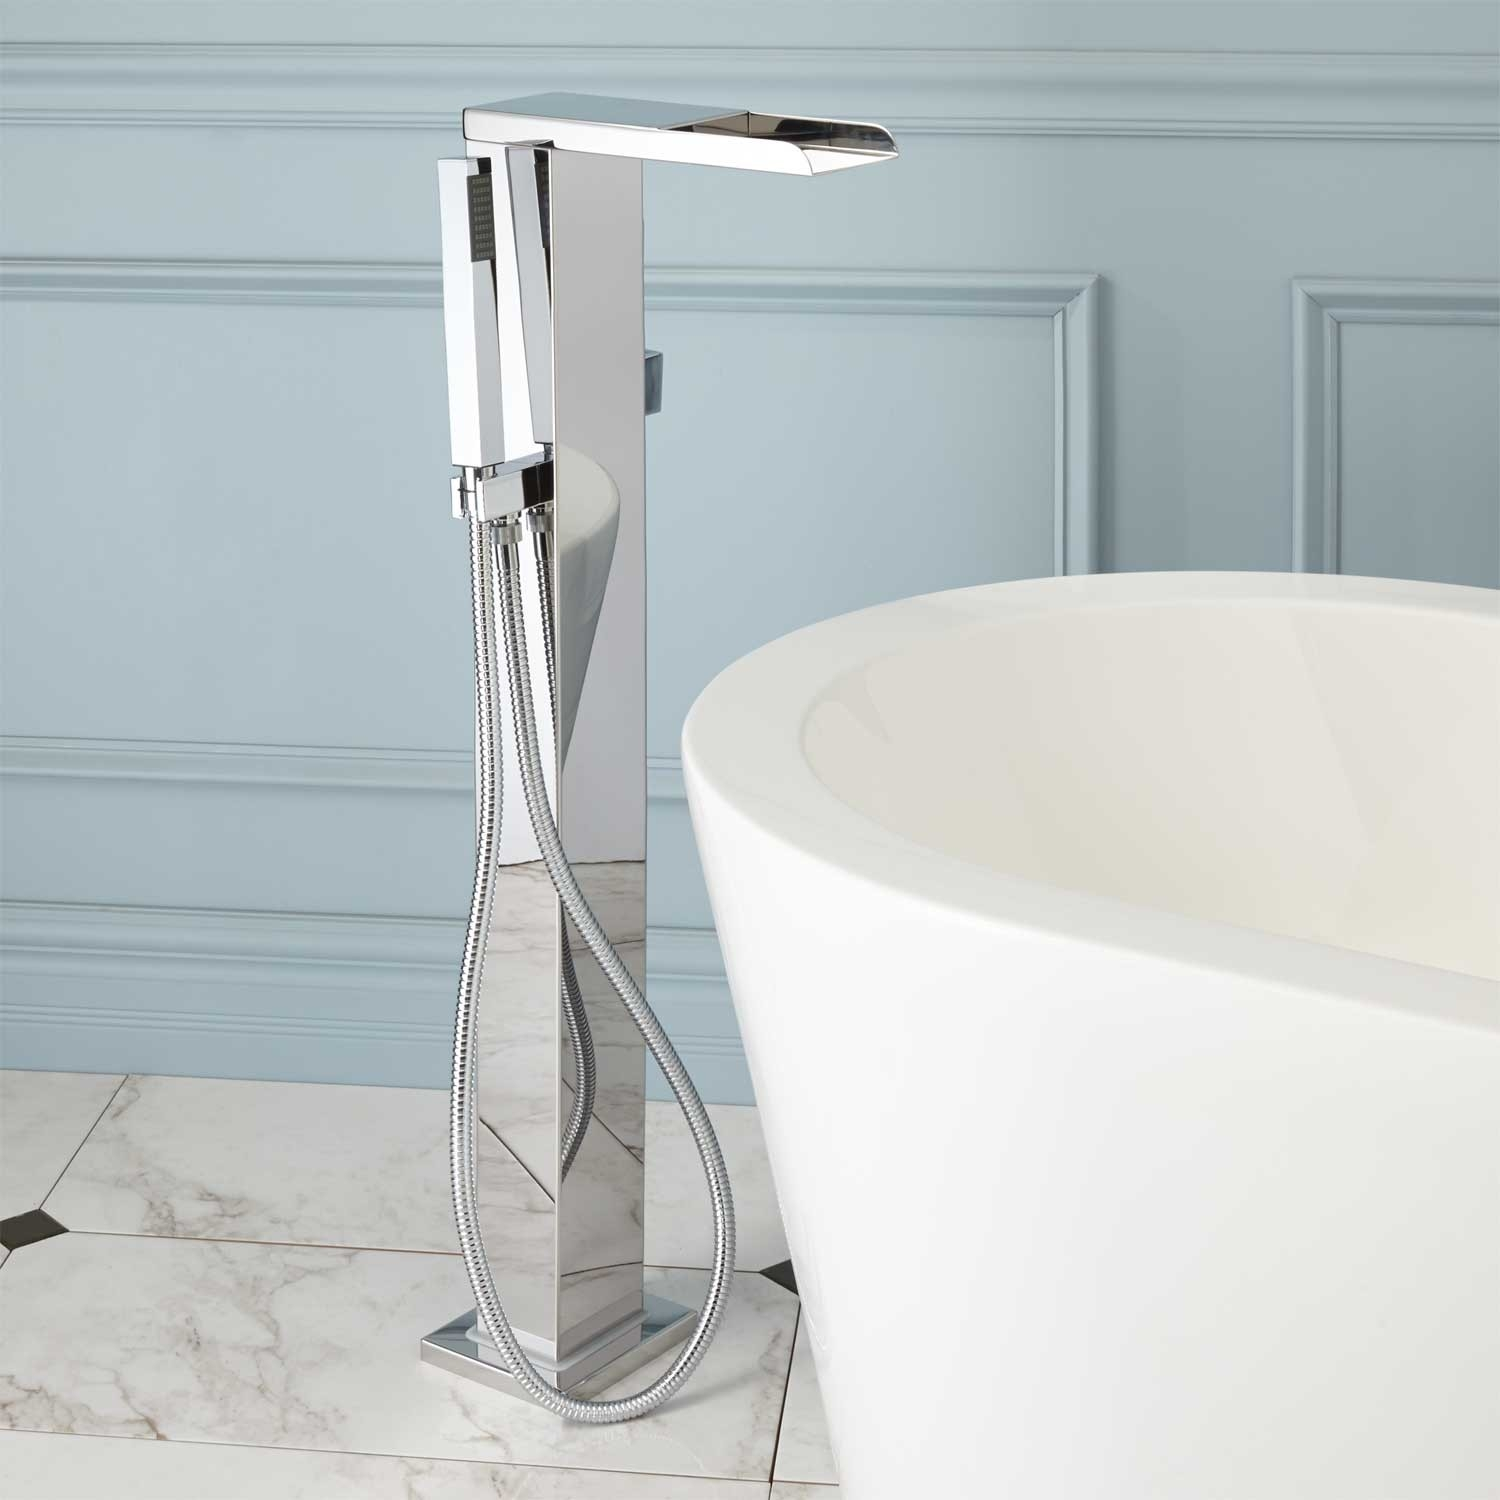 Ideas, bathroom superb freestanding tub faucet polished nickel 77 intended for sizing 1500 x 1500  .